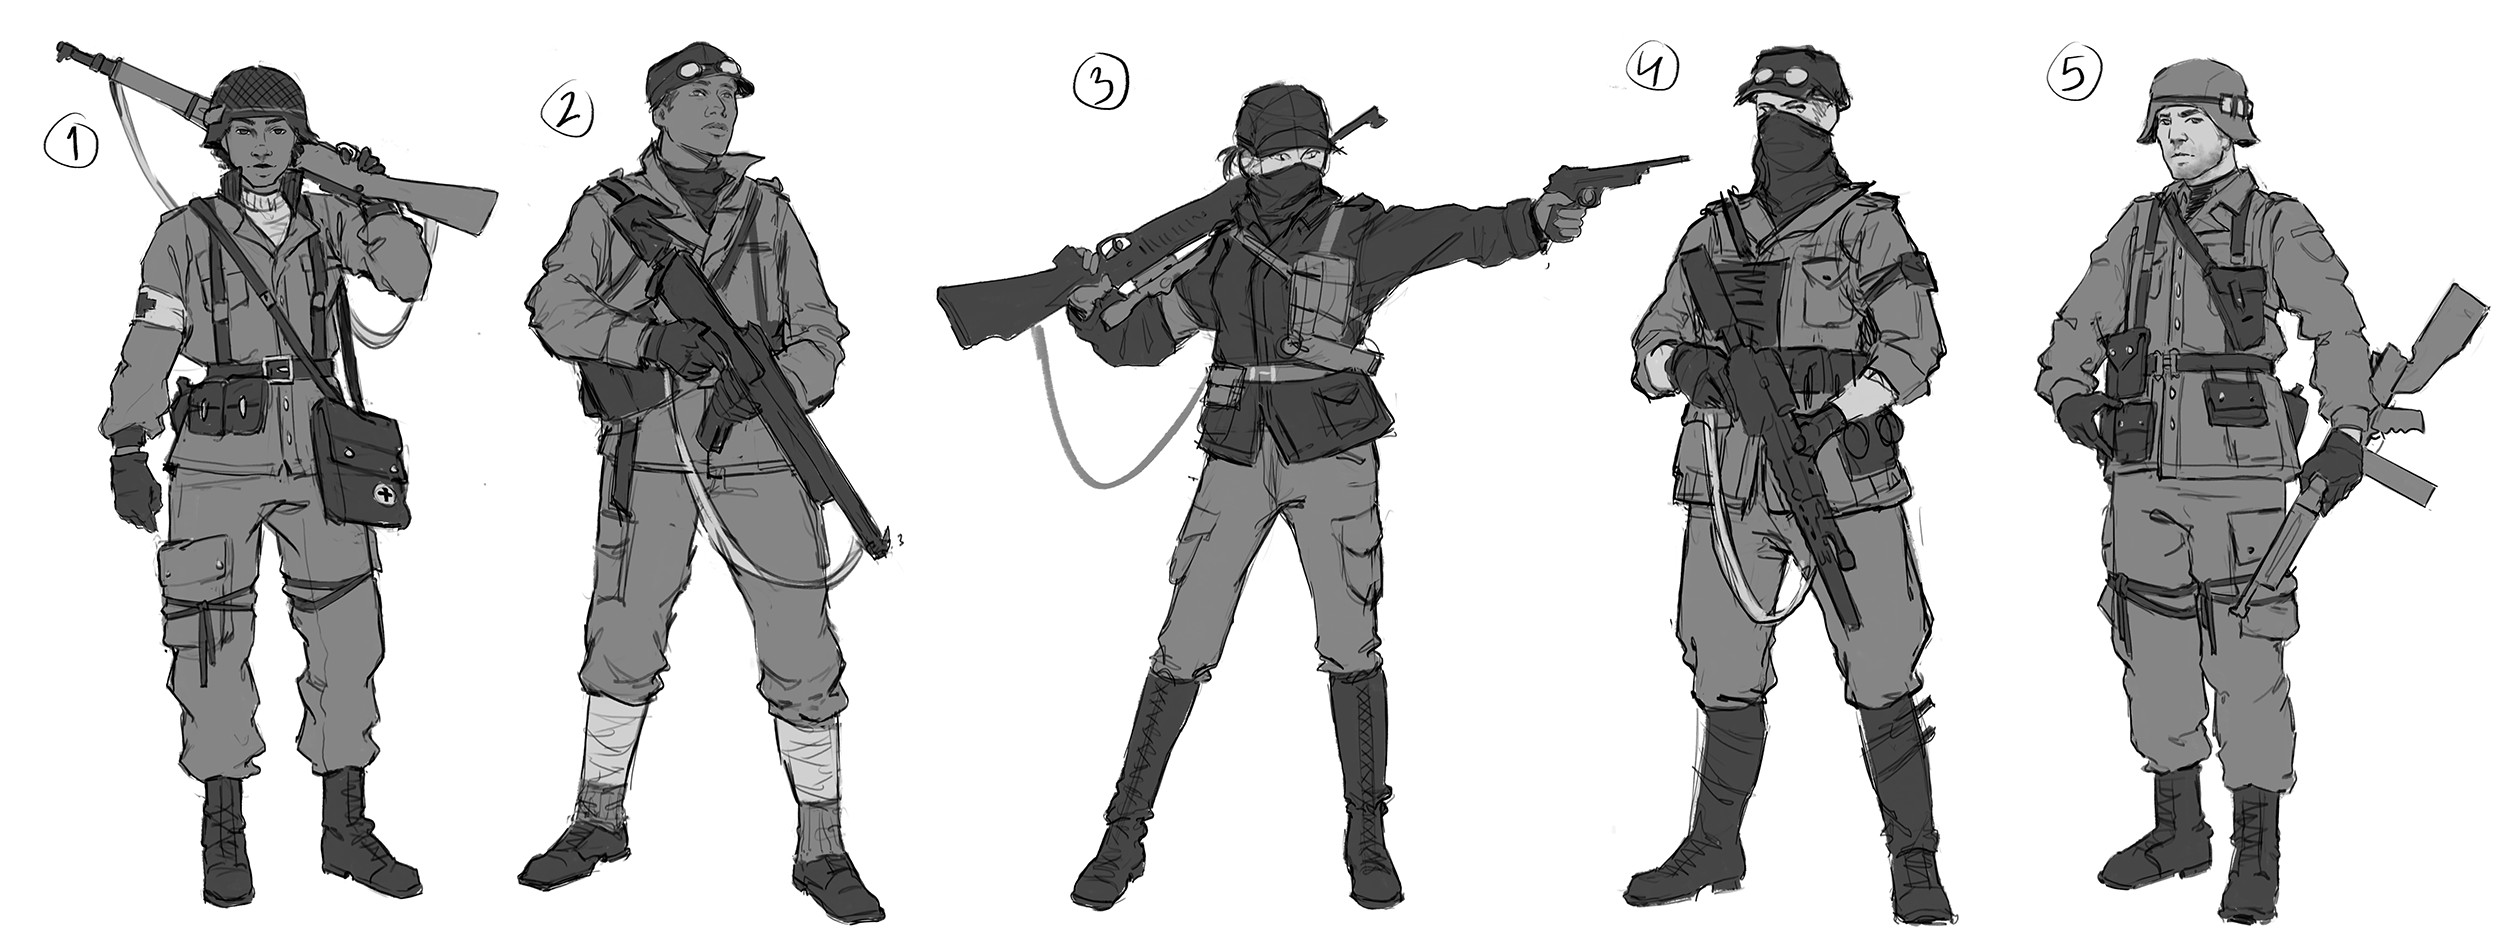 Sketches for the USA soldiers.